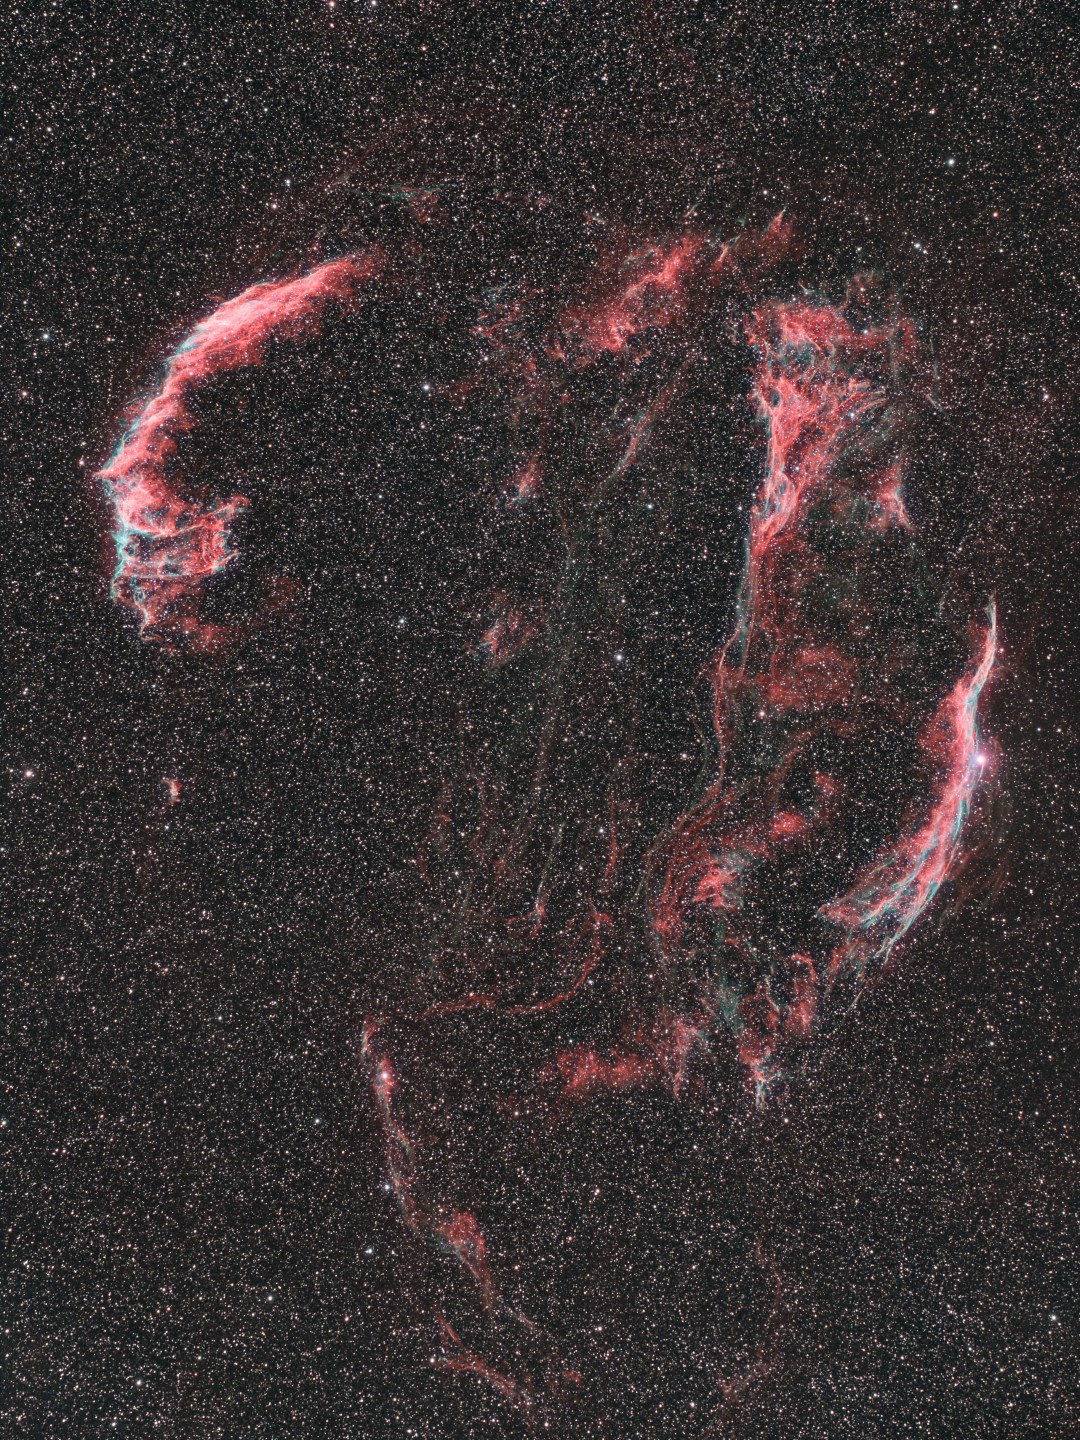 Veil super nova remnant captured by Ron Brecher using an Optolong L-eNhance filter